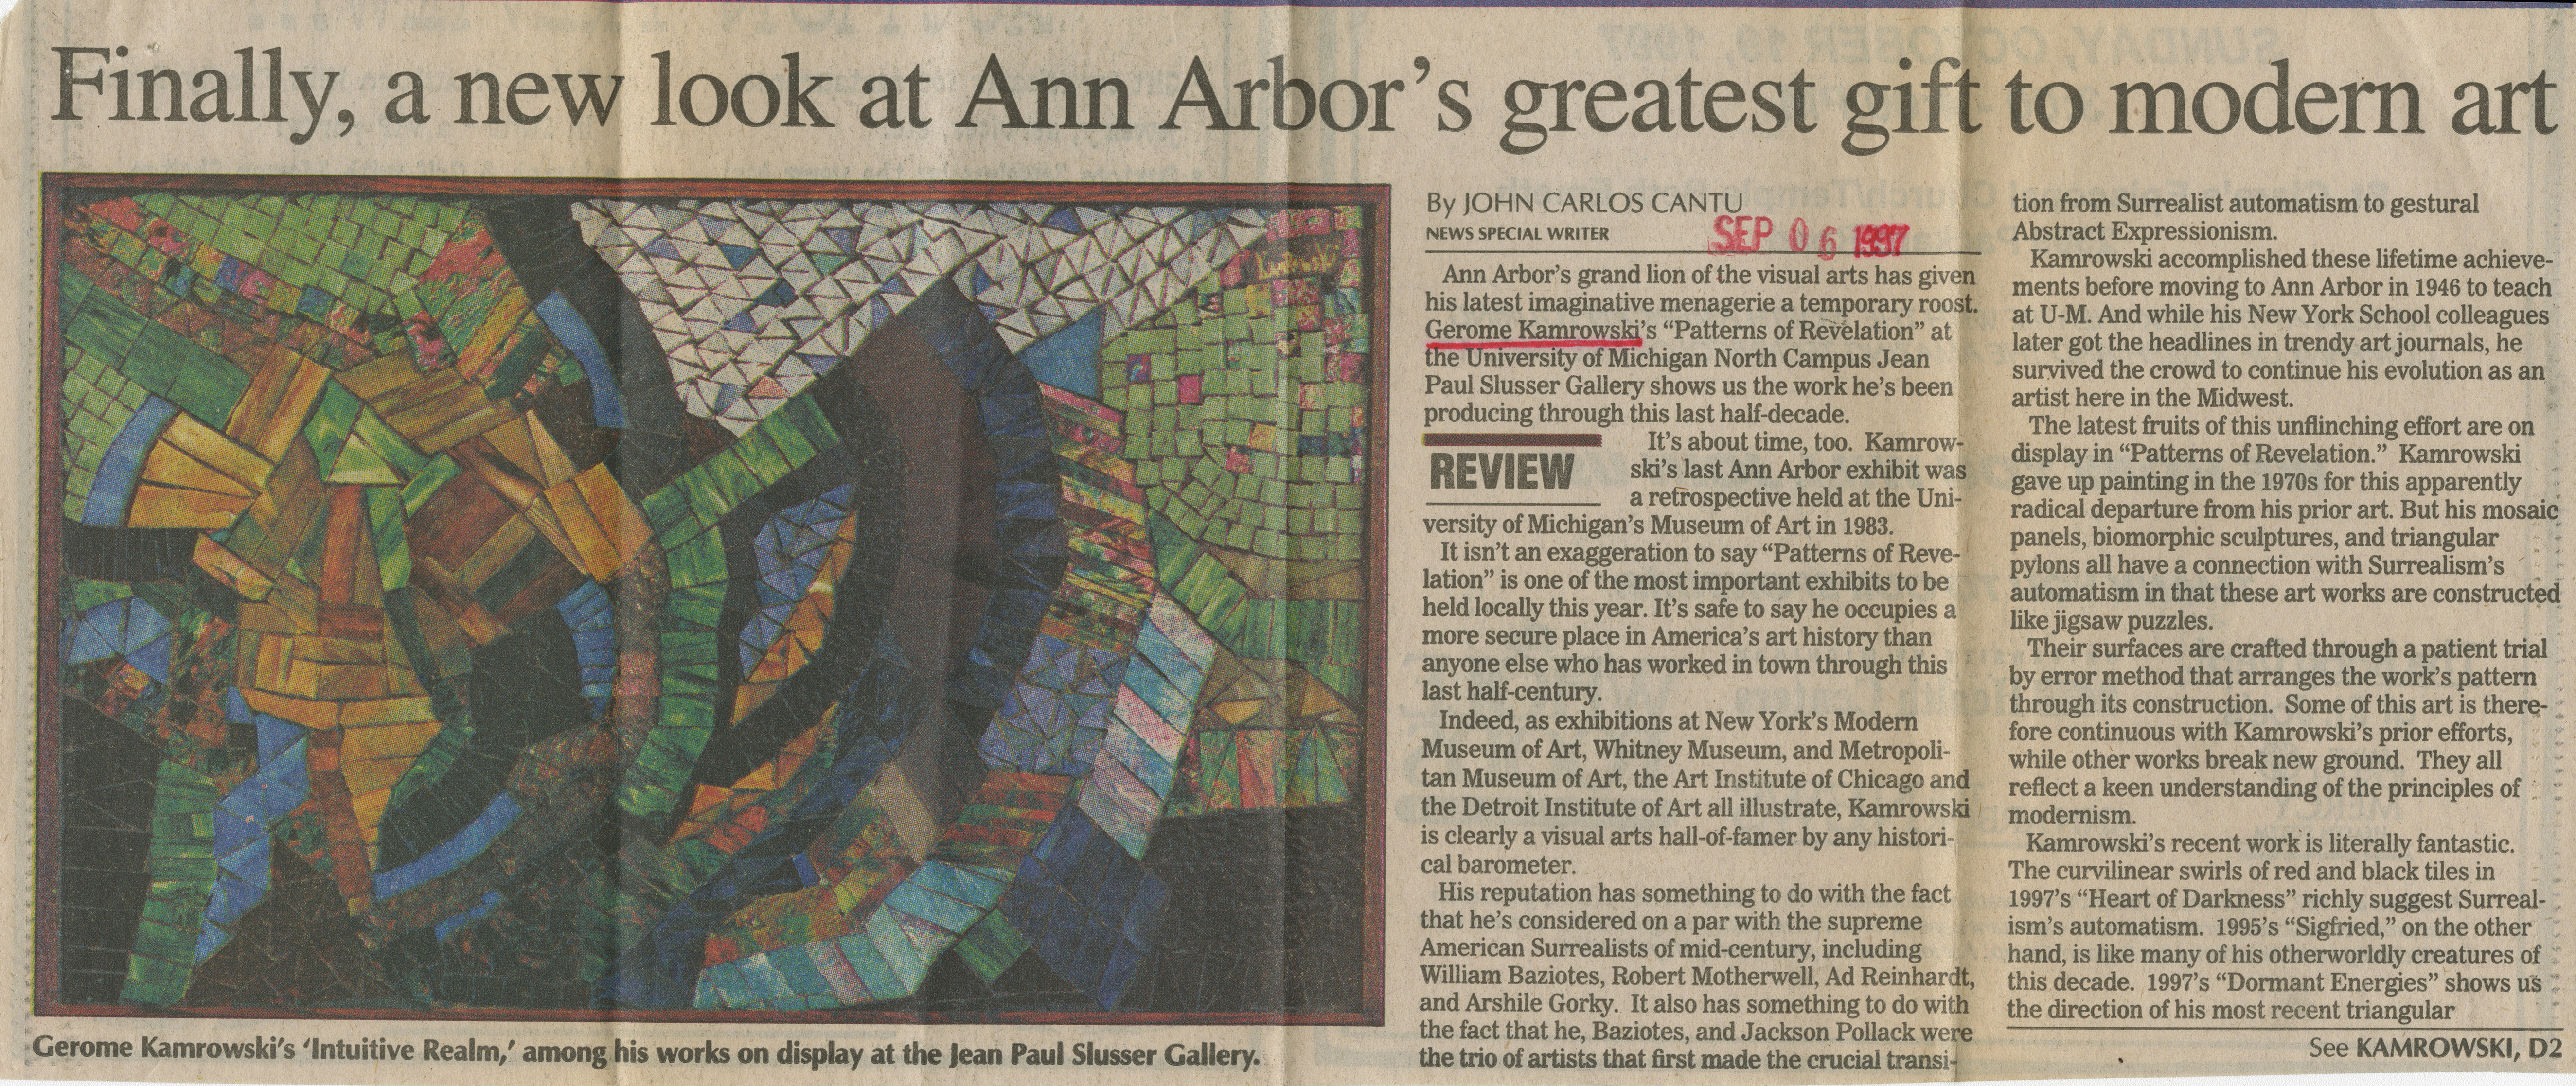 Finally, a new look at Ann Arbor's greatest gift to modern art image